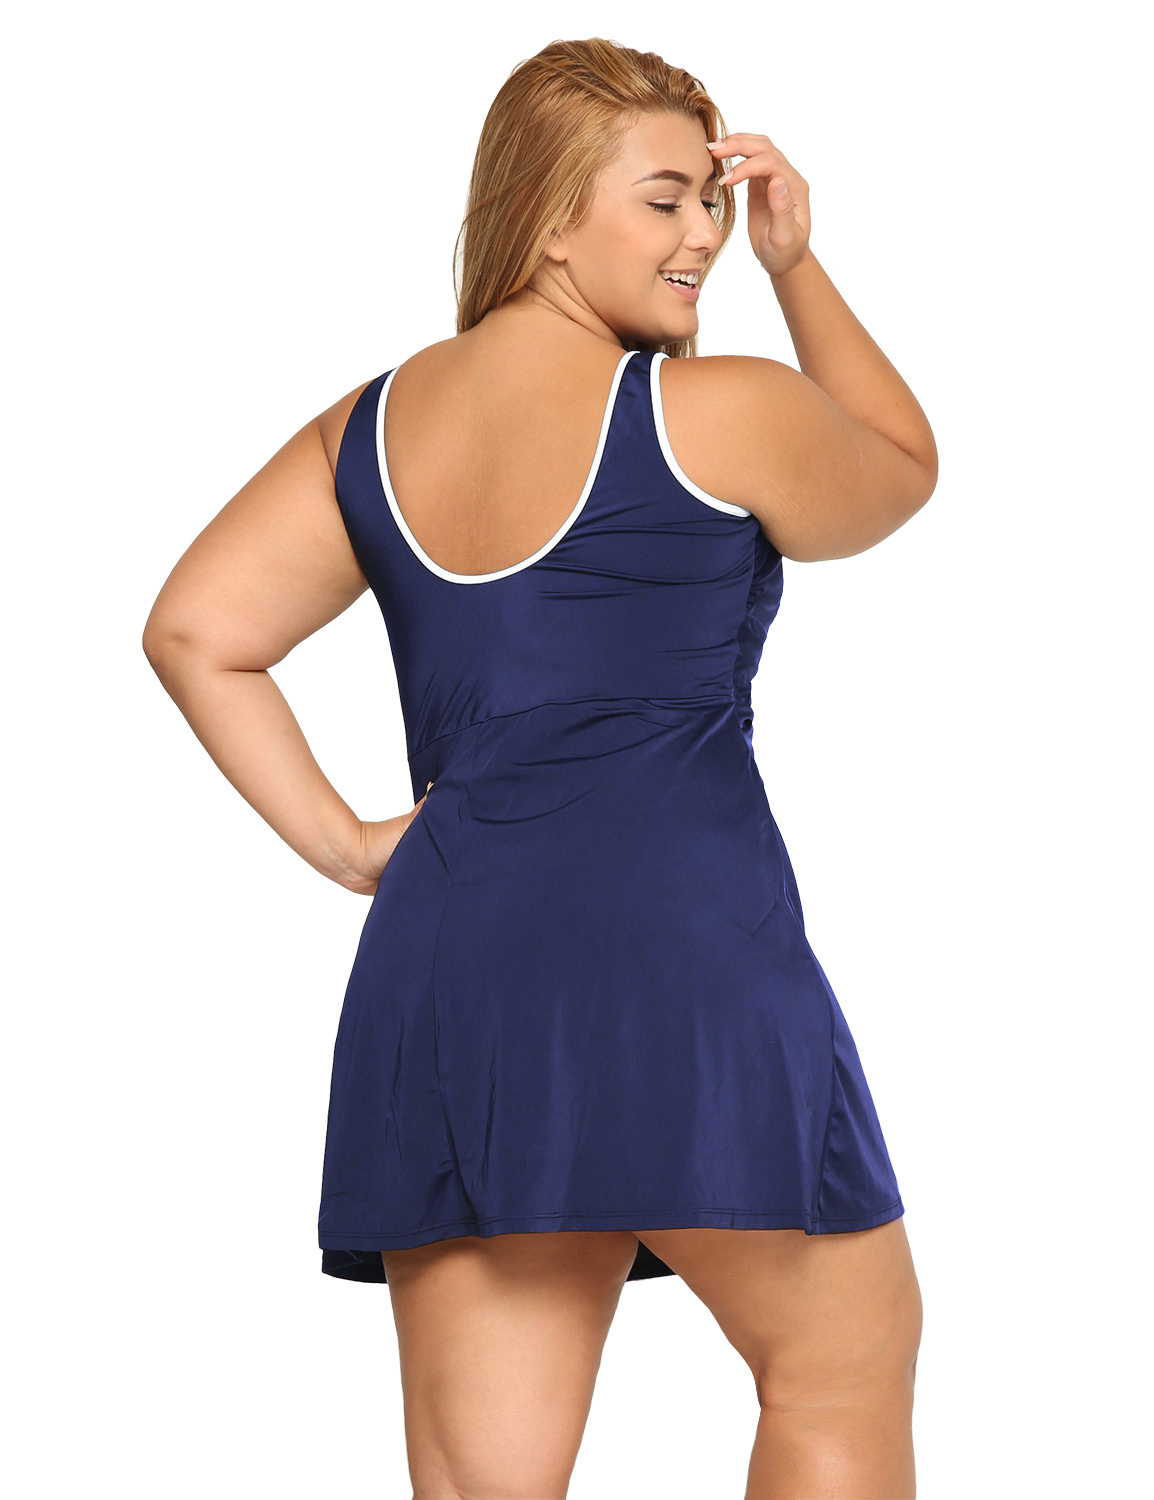 Women-039-s-One-Piece-Zip-Front-Skirted-Plus-Size-Swimdress-Swimsuit thumbnail 9